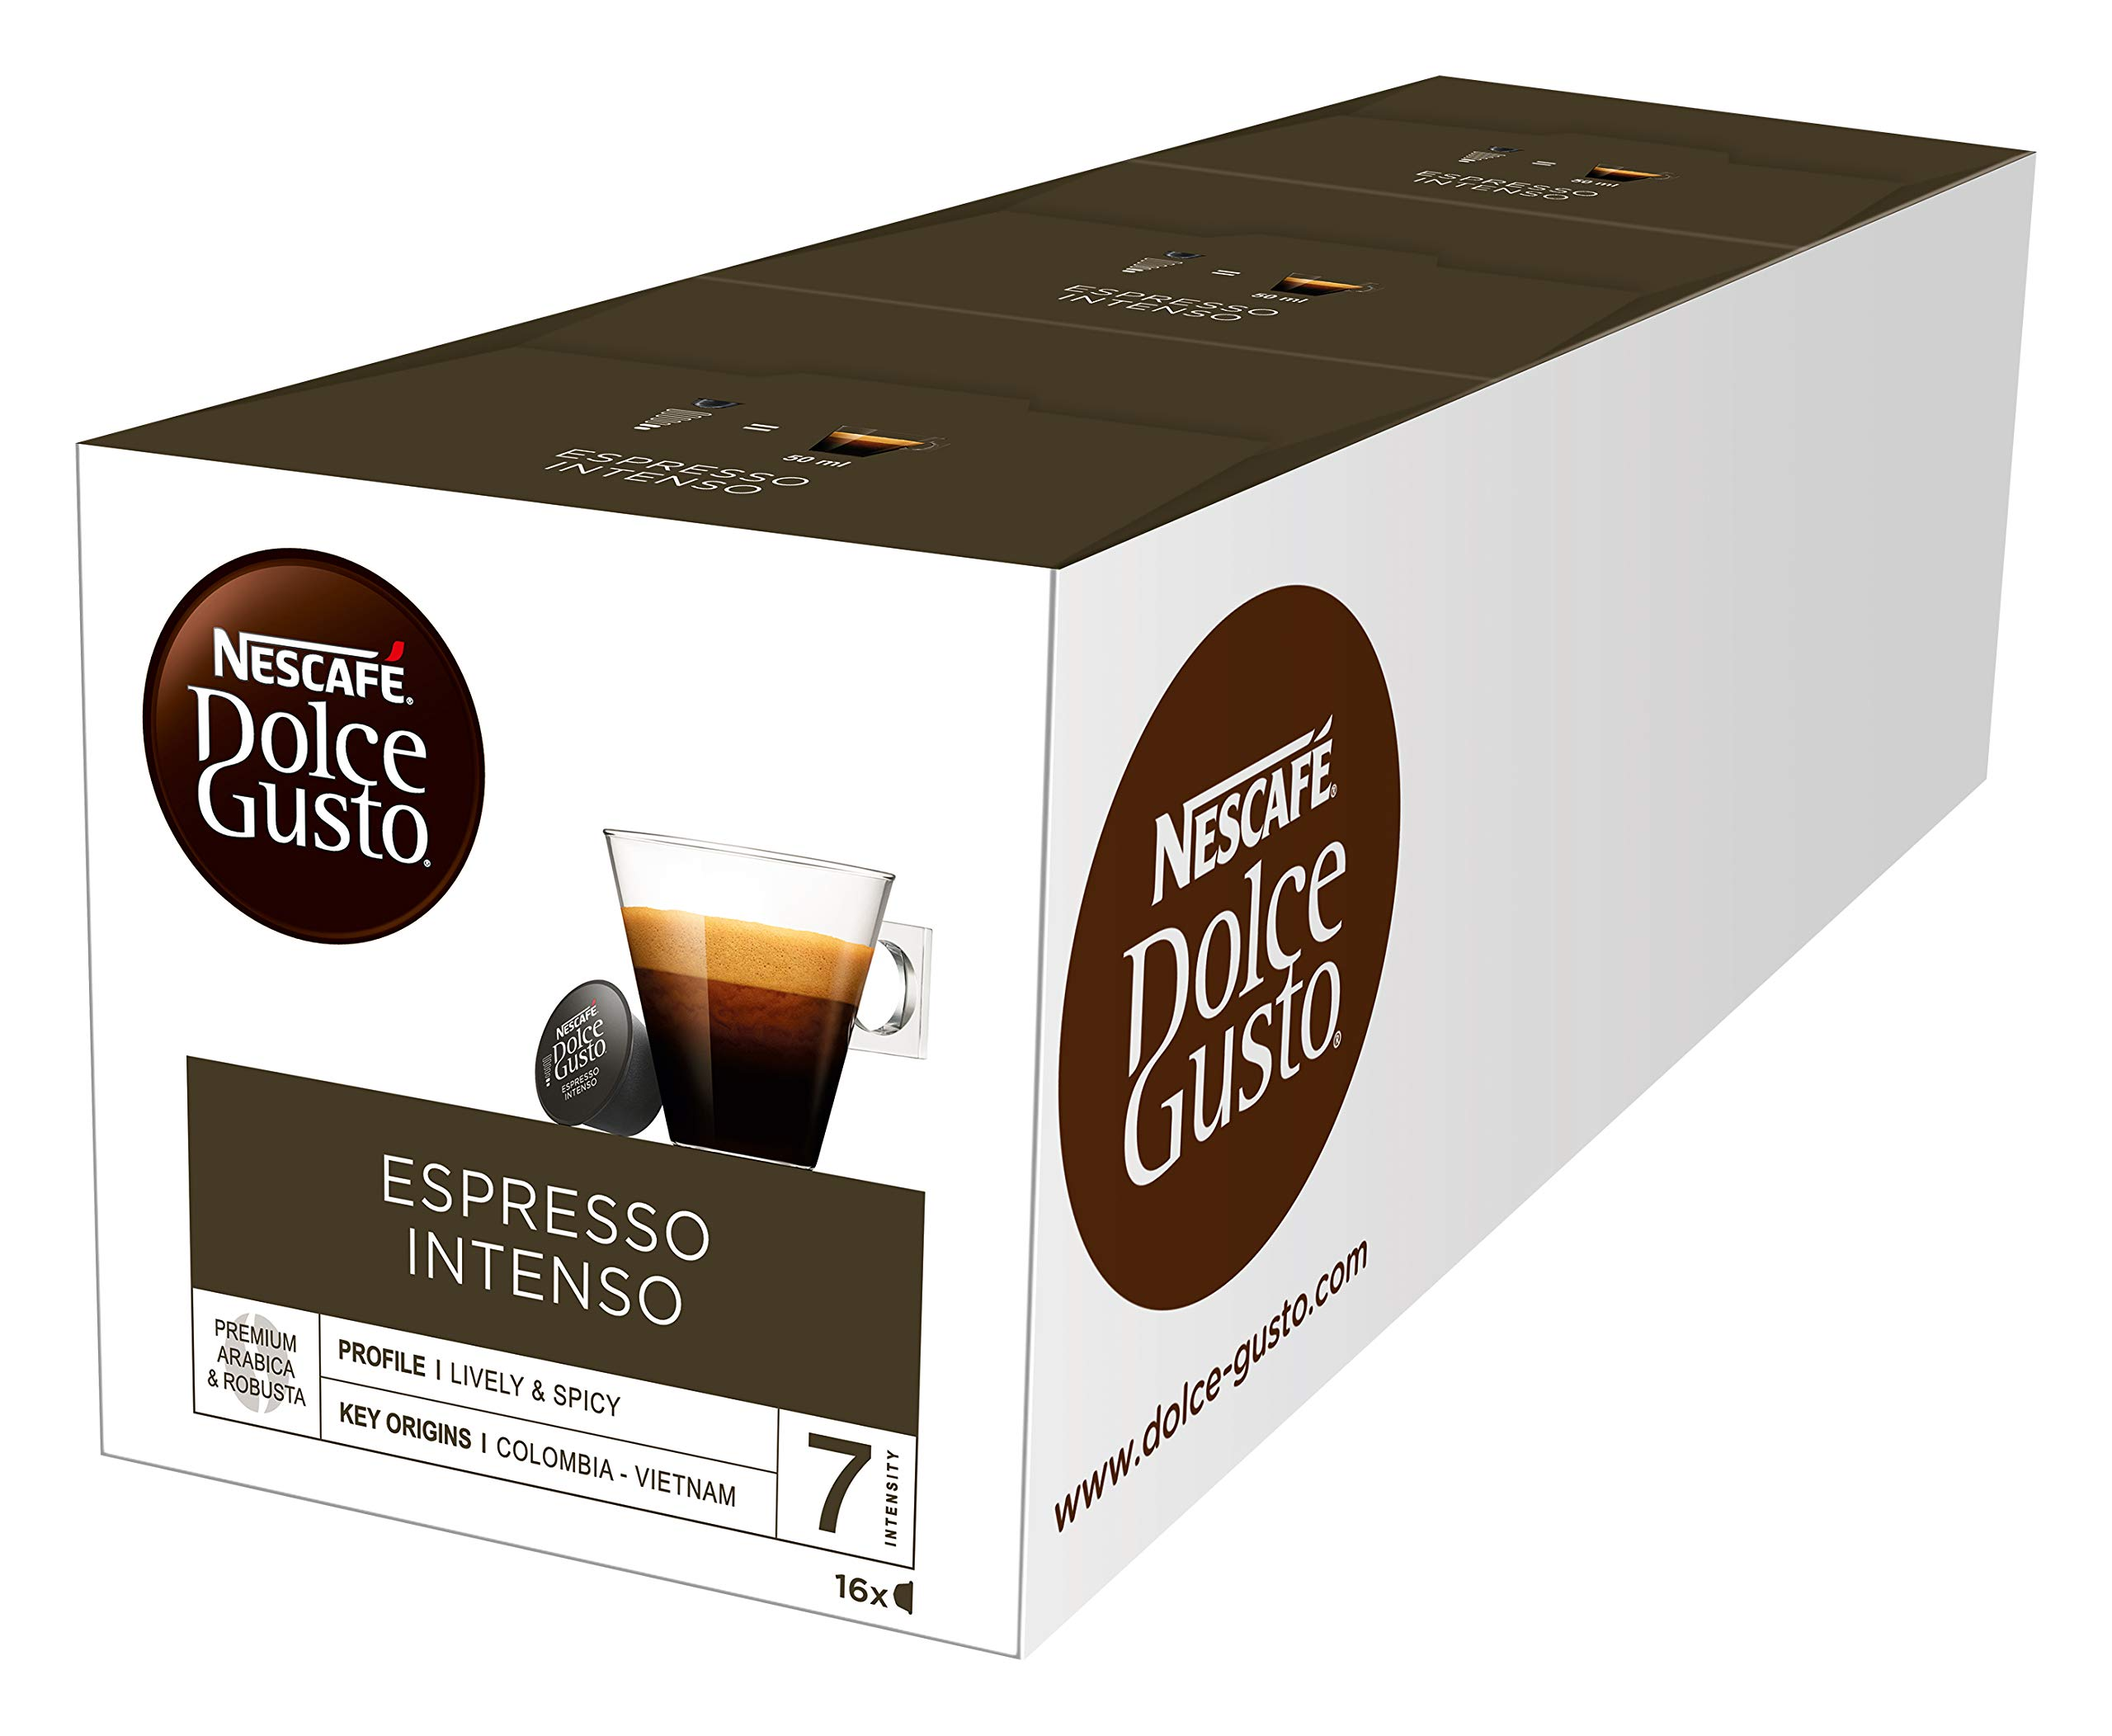 Nescafe Dolce Gusto for Nescafe Dolce Gusto Brewers, Espresso Intenso, 16 Count